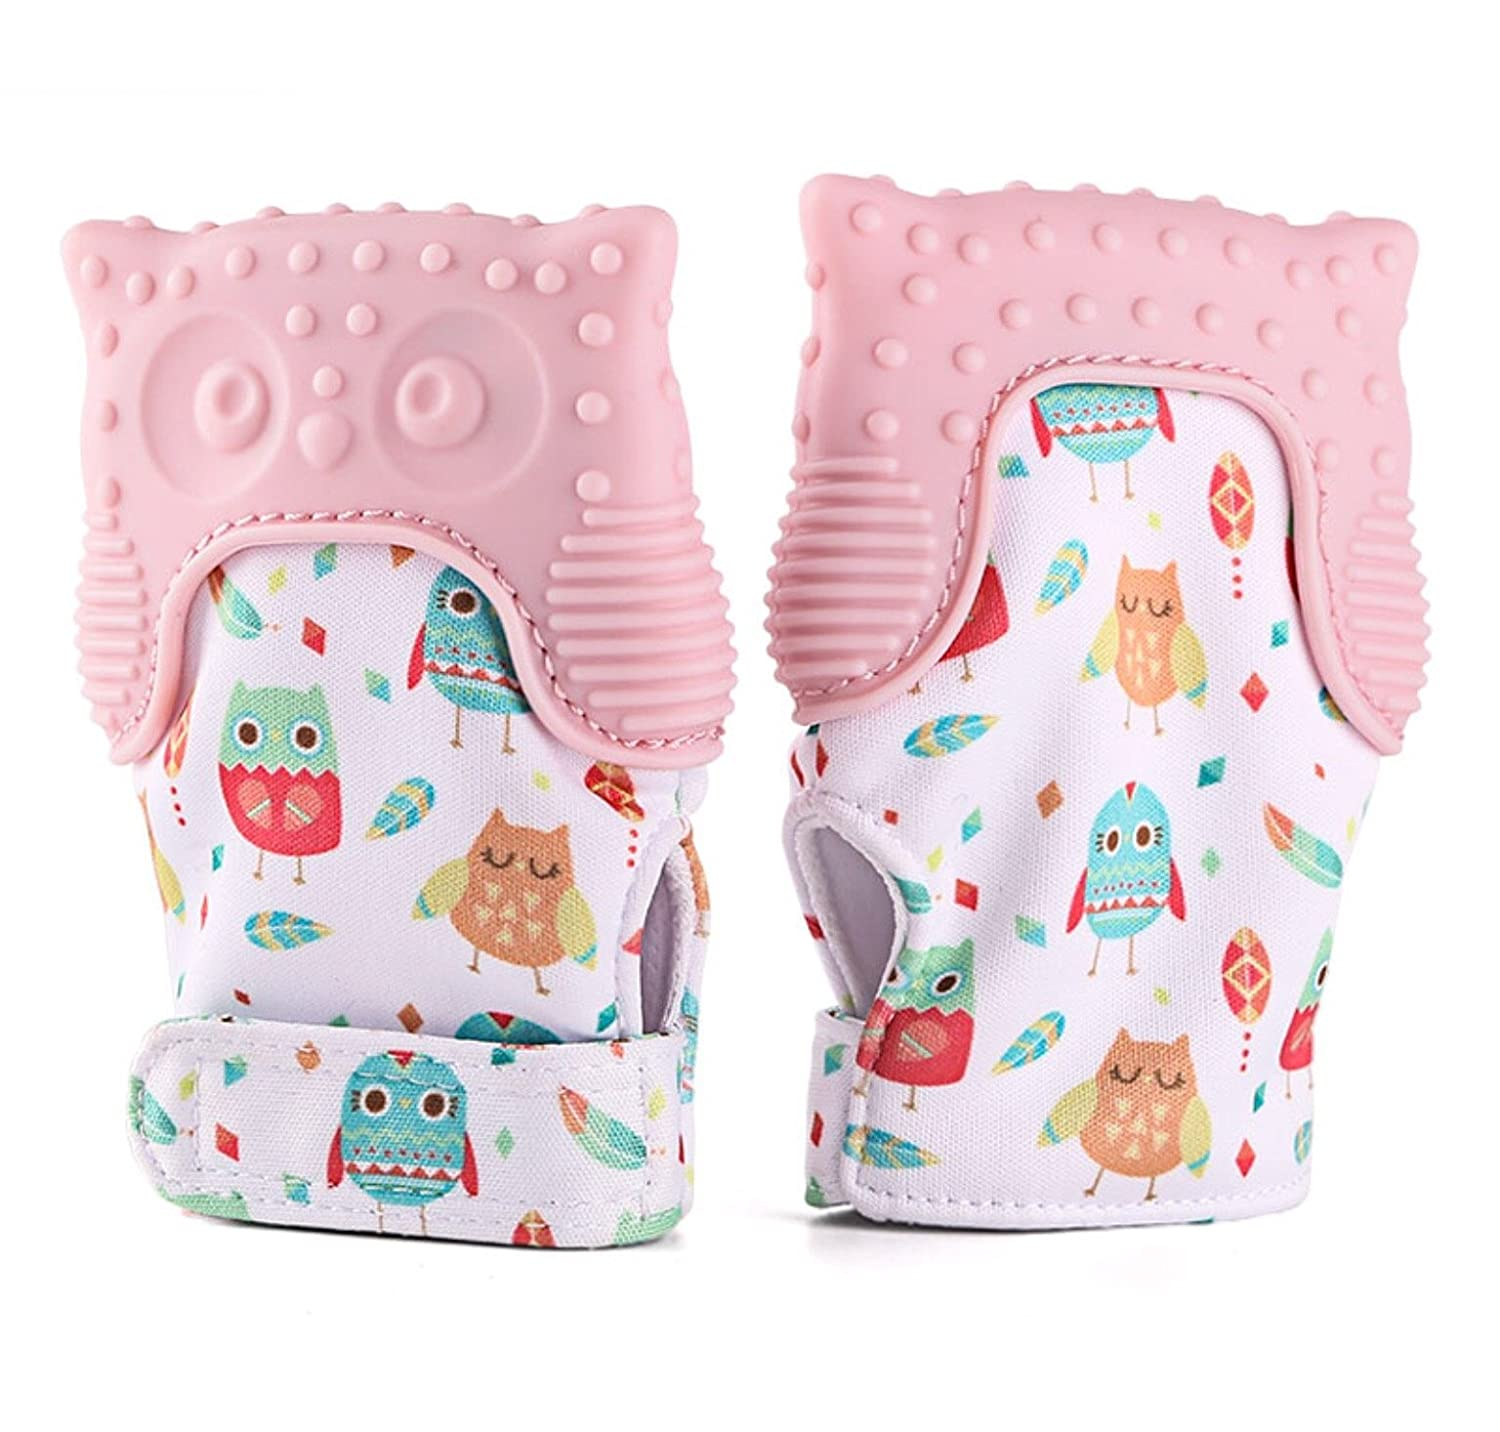 APL Teething Mitten Owl teething toy for babies Self-Soothing Pain Relief and teething BPA Free Safe Good Grade Teething Mitt for 3 Months Pink, One Mitten